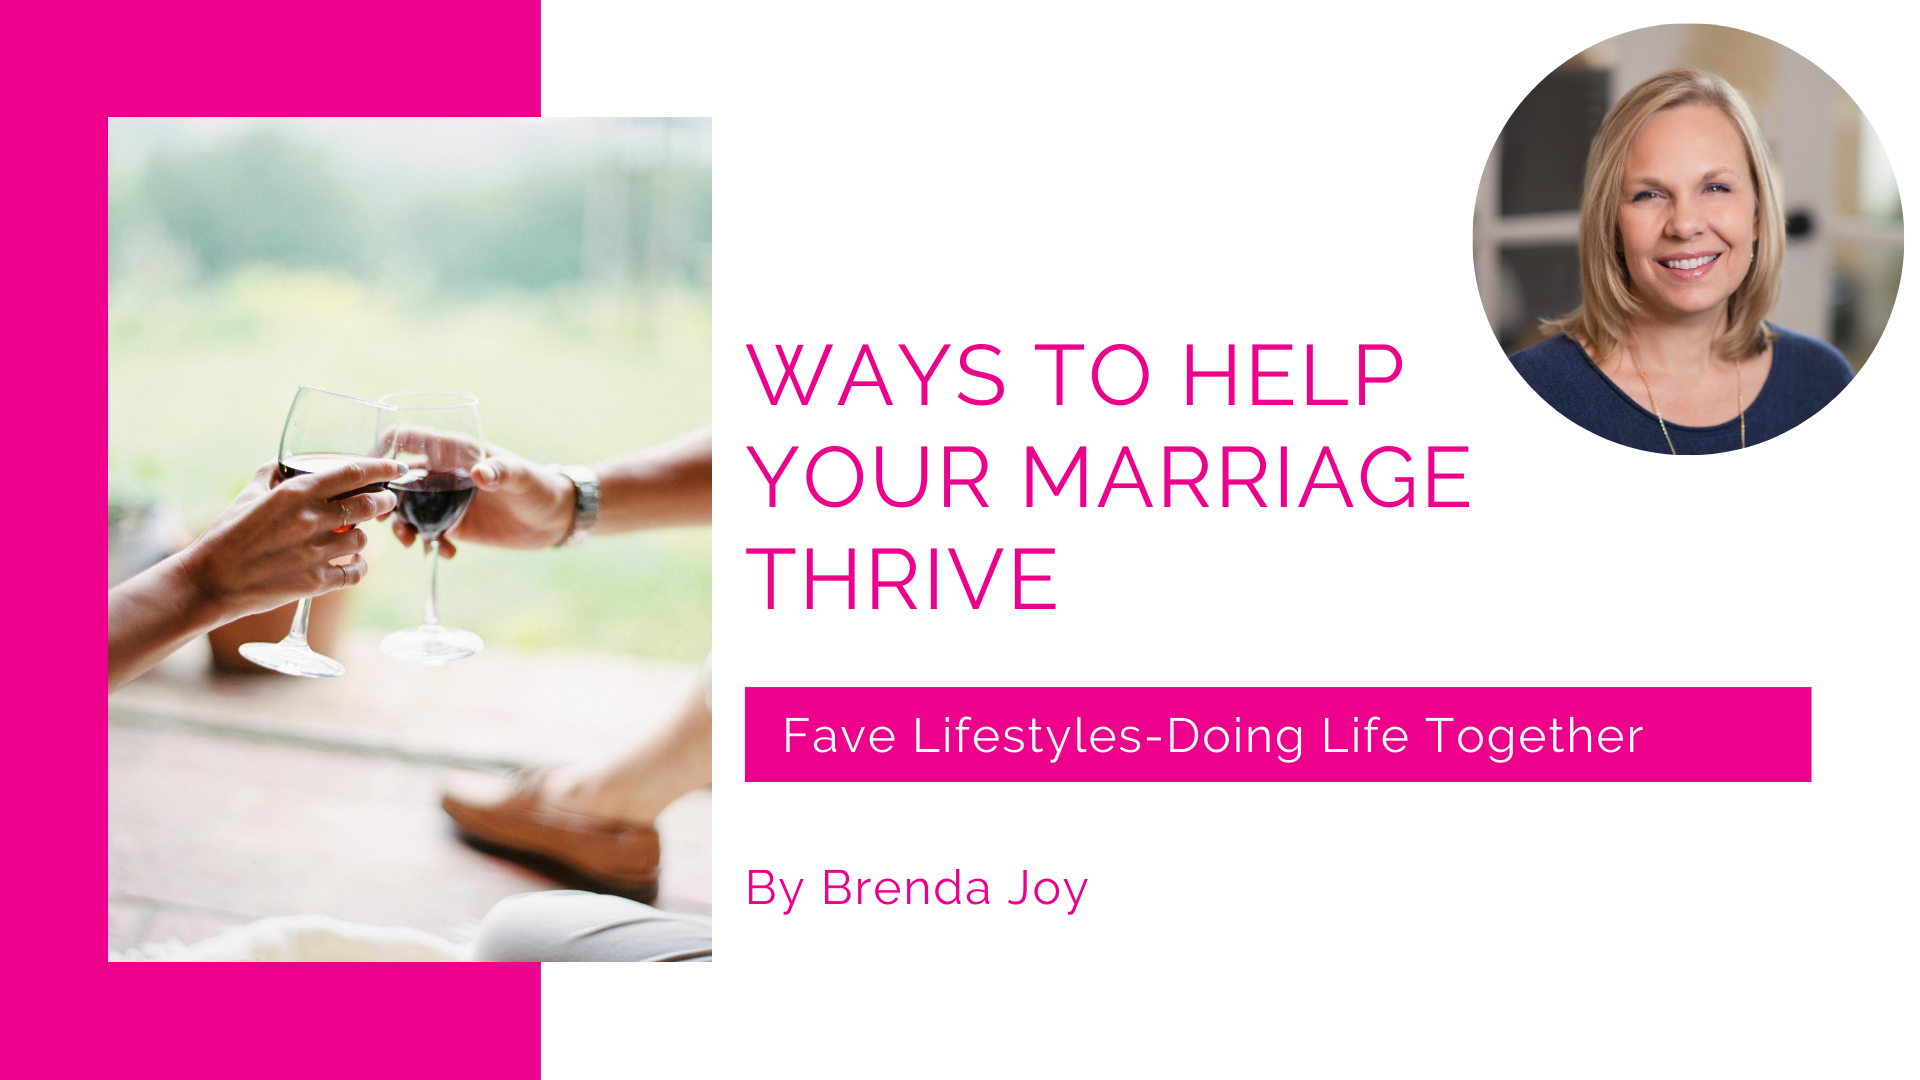 Ways to Help Your Marriage Thrive